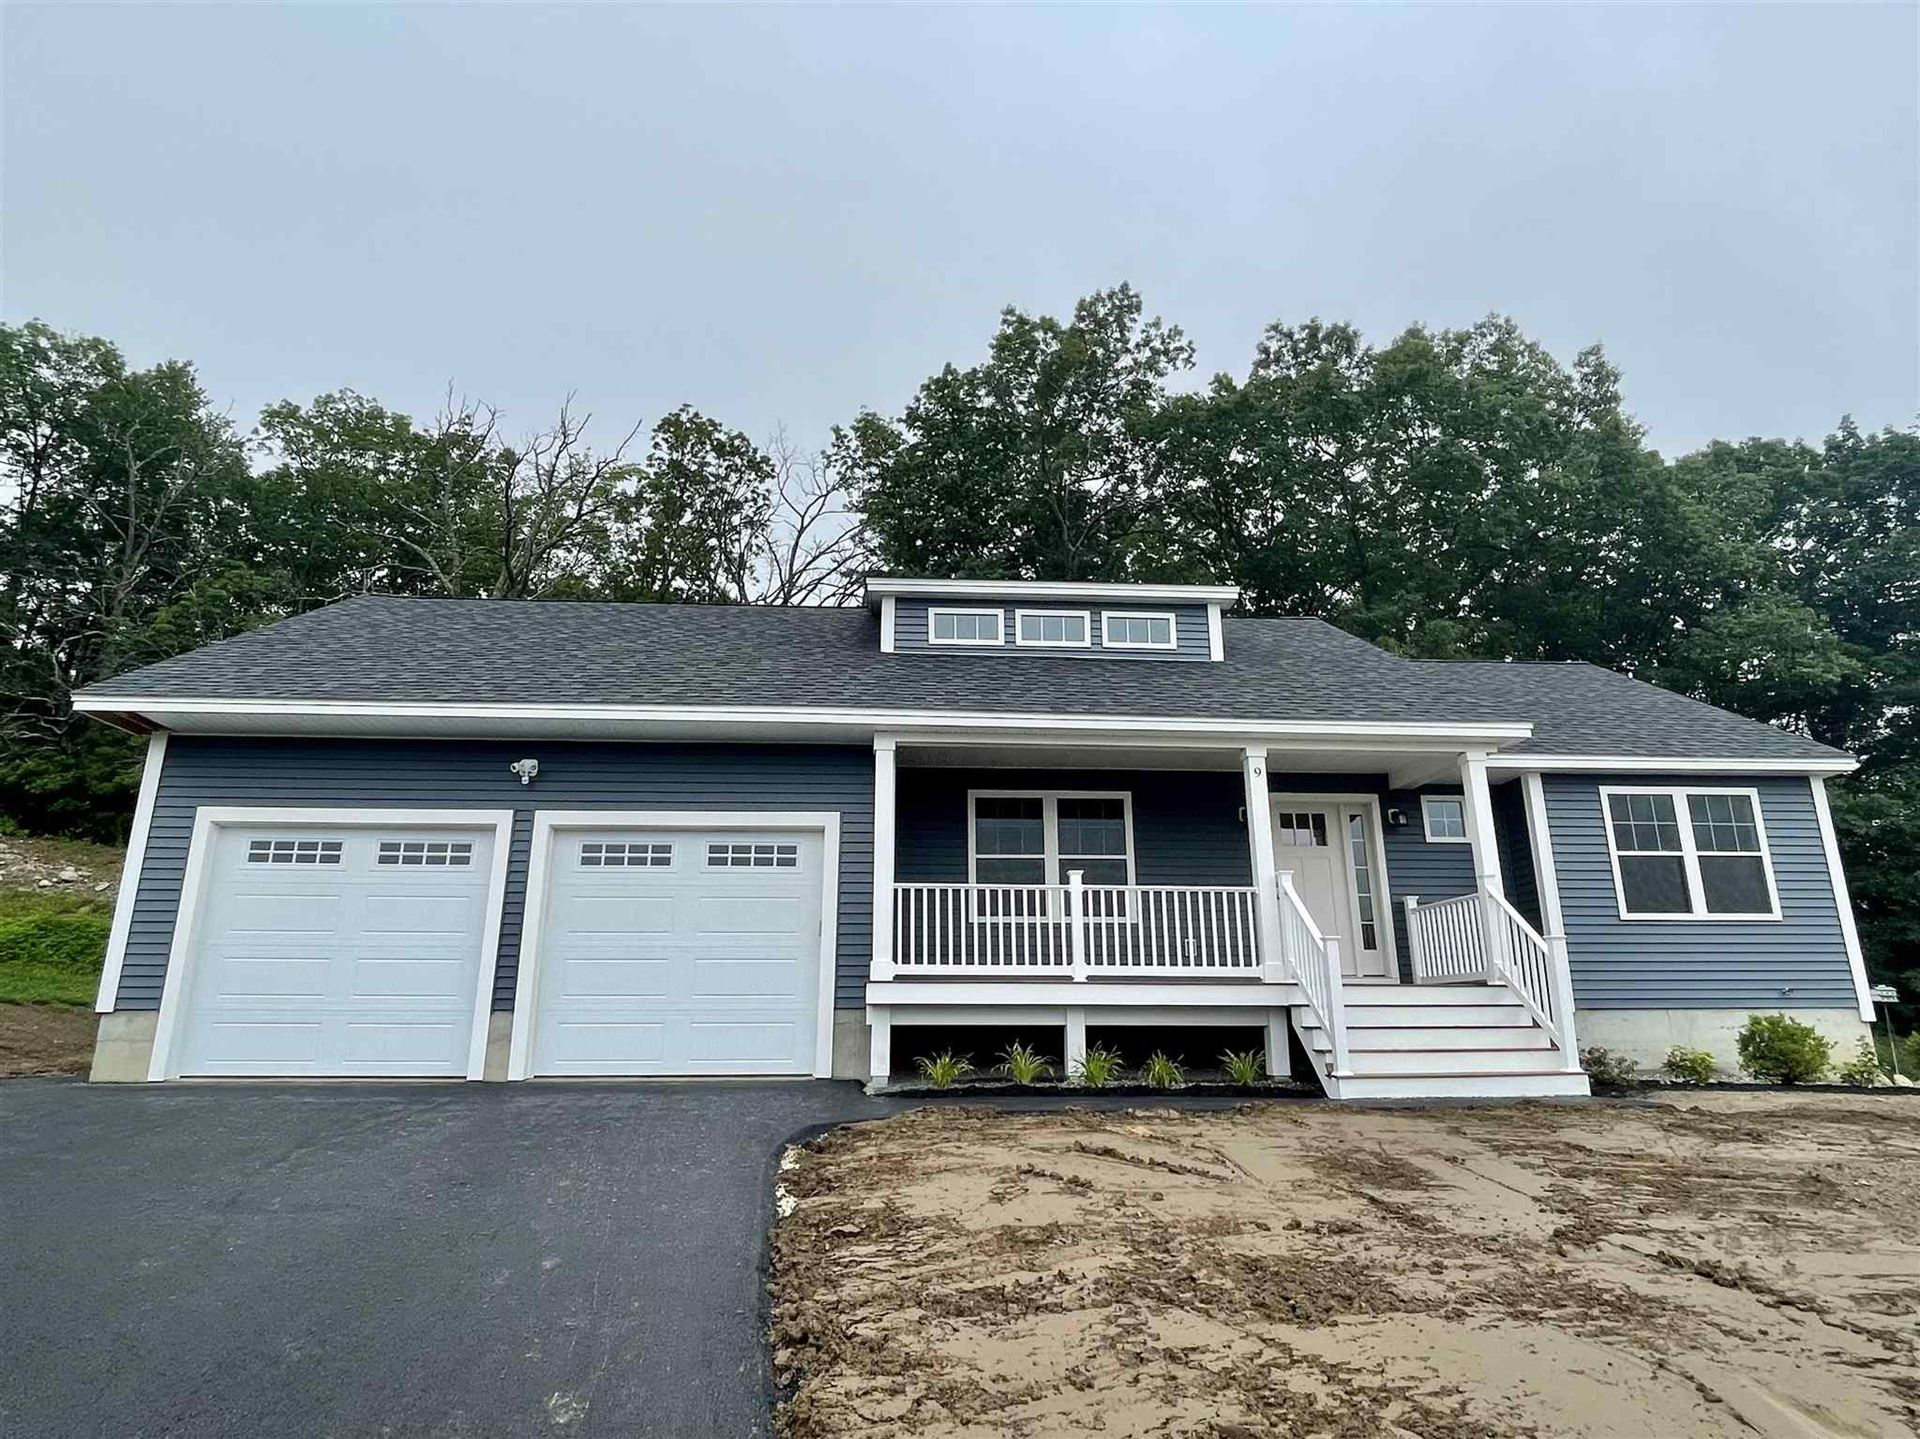 LOT 74 The Villages at Sunningdale Drive #74, Somersworth, NH 03878 - MLS#: 4792123